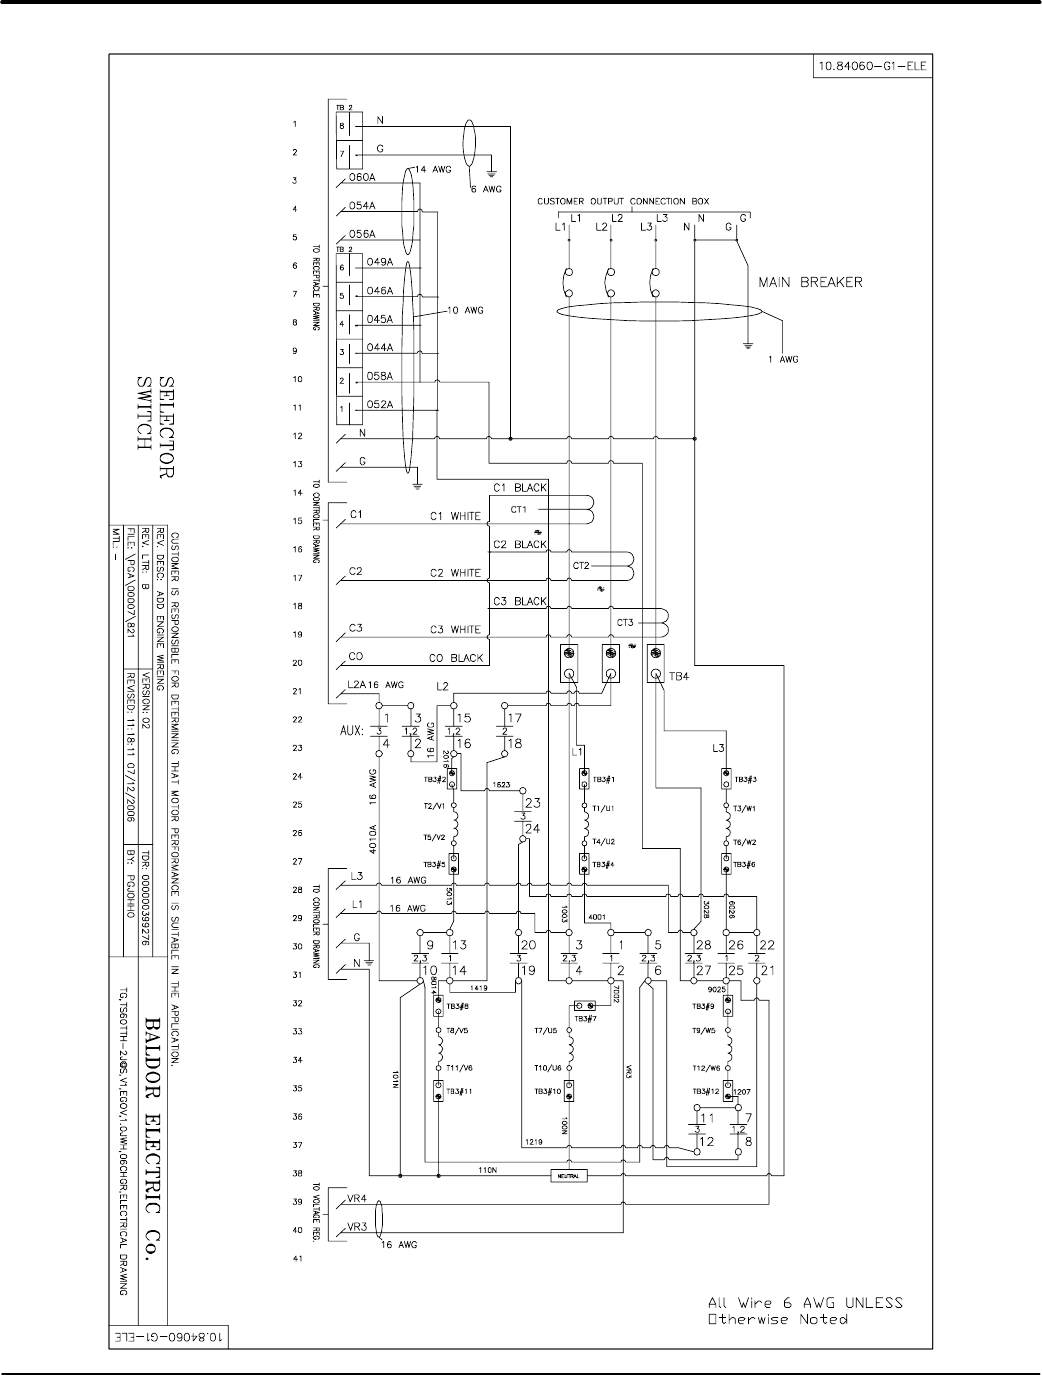 Toyota Corolla 2006 Radio Wiring Diagram 1994 Stereo Within To as well Square D Motor Starter 8536 Wiring Diagram as well 3 Way Toggle Switch Wiring Diagram Variations furthermore Nissan 1400 Wiring Diagram Free likewise Series Parallel Battery Wiring Diagram. on bination switch wiring diagram